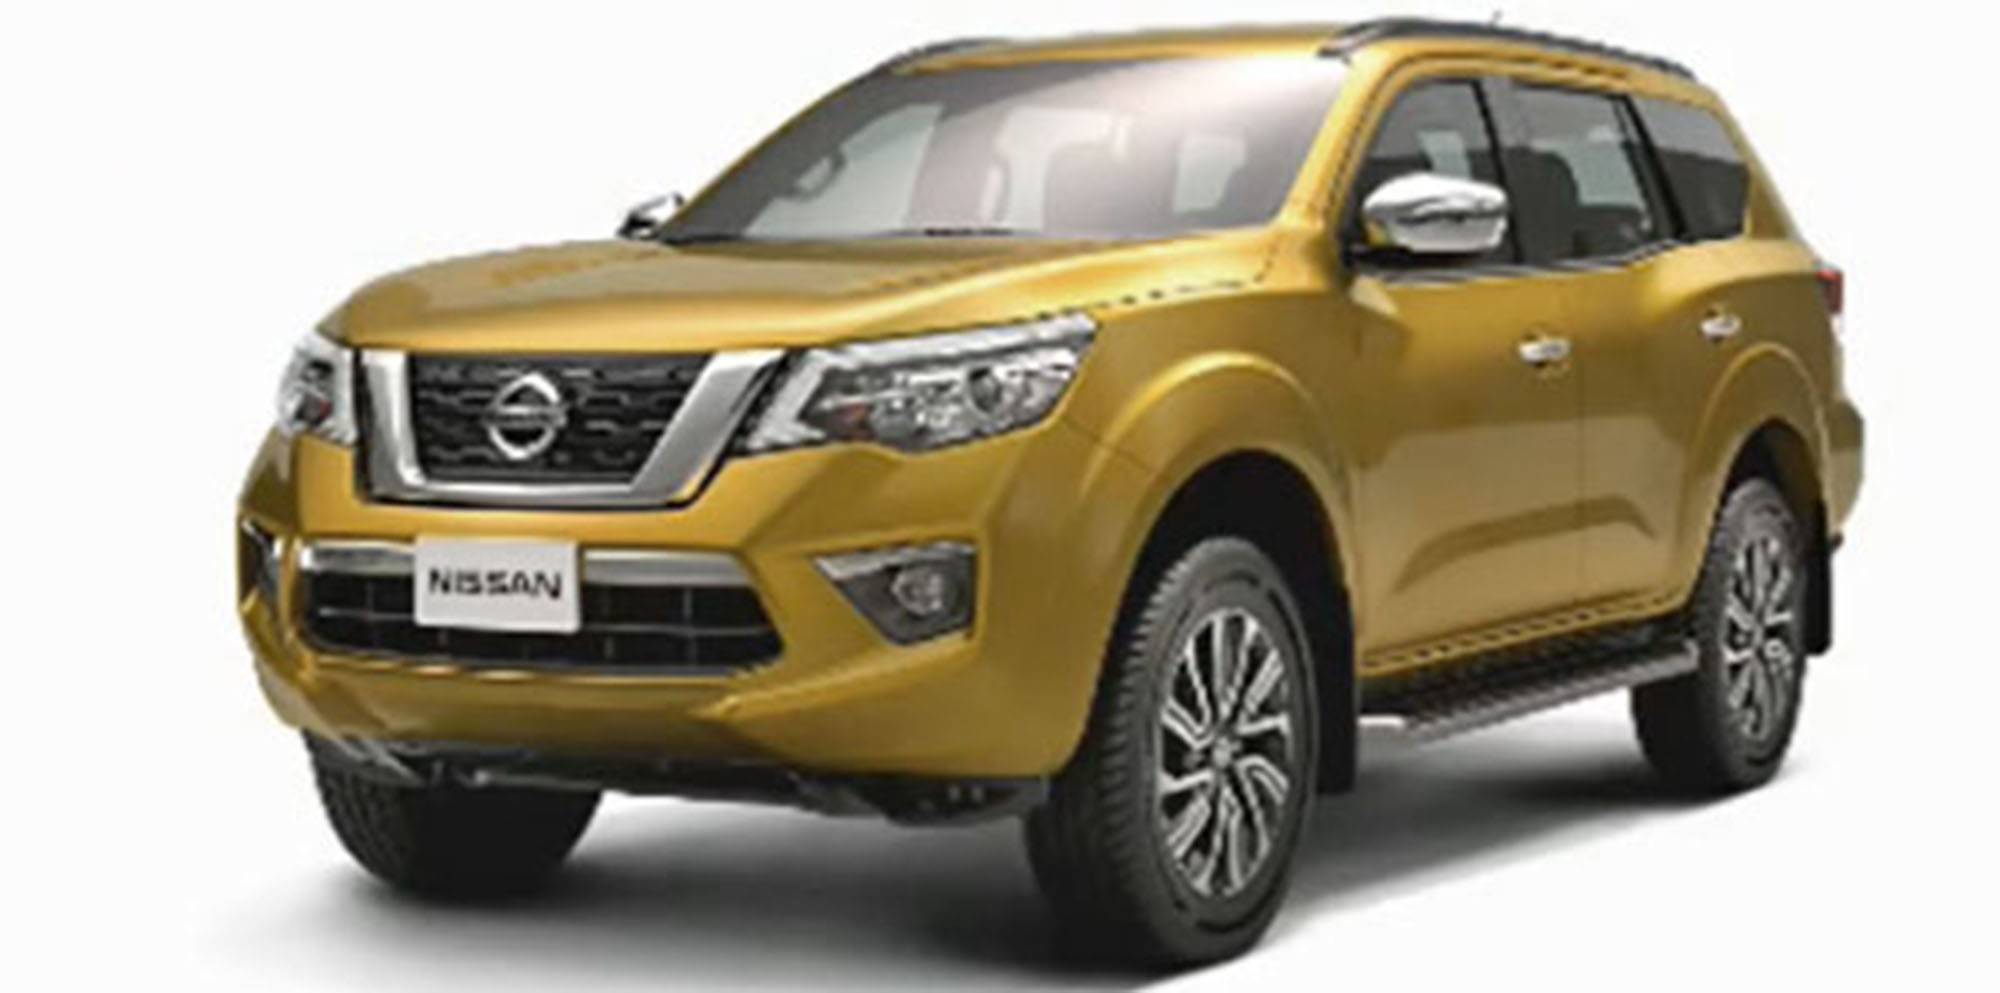 2018 nissan navara suv spied and leaked in china photos. Black Bedroom Furniture Sets. Home Design Ideas